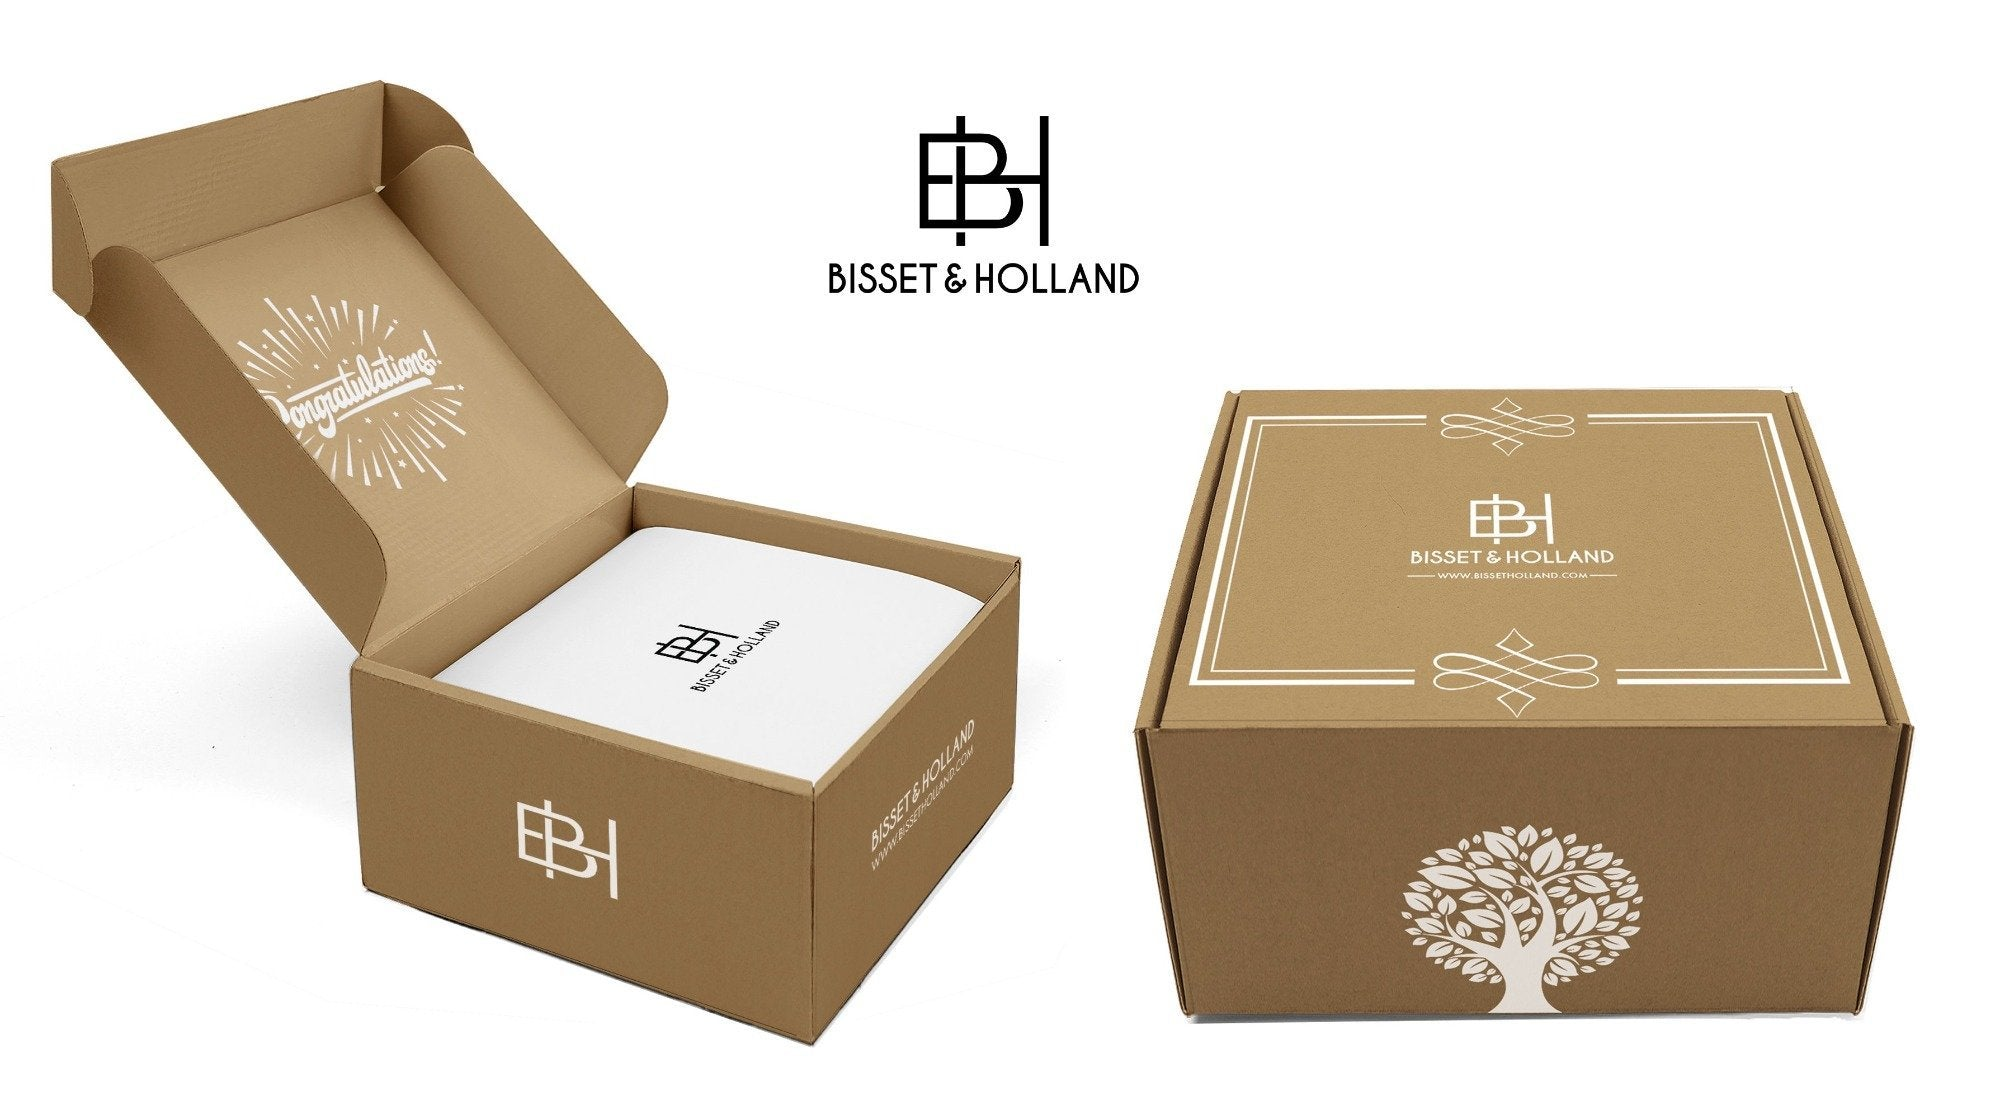 plastic-surgery-supplies-gift-box-bisset-holland